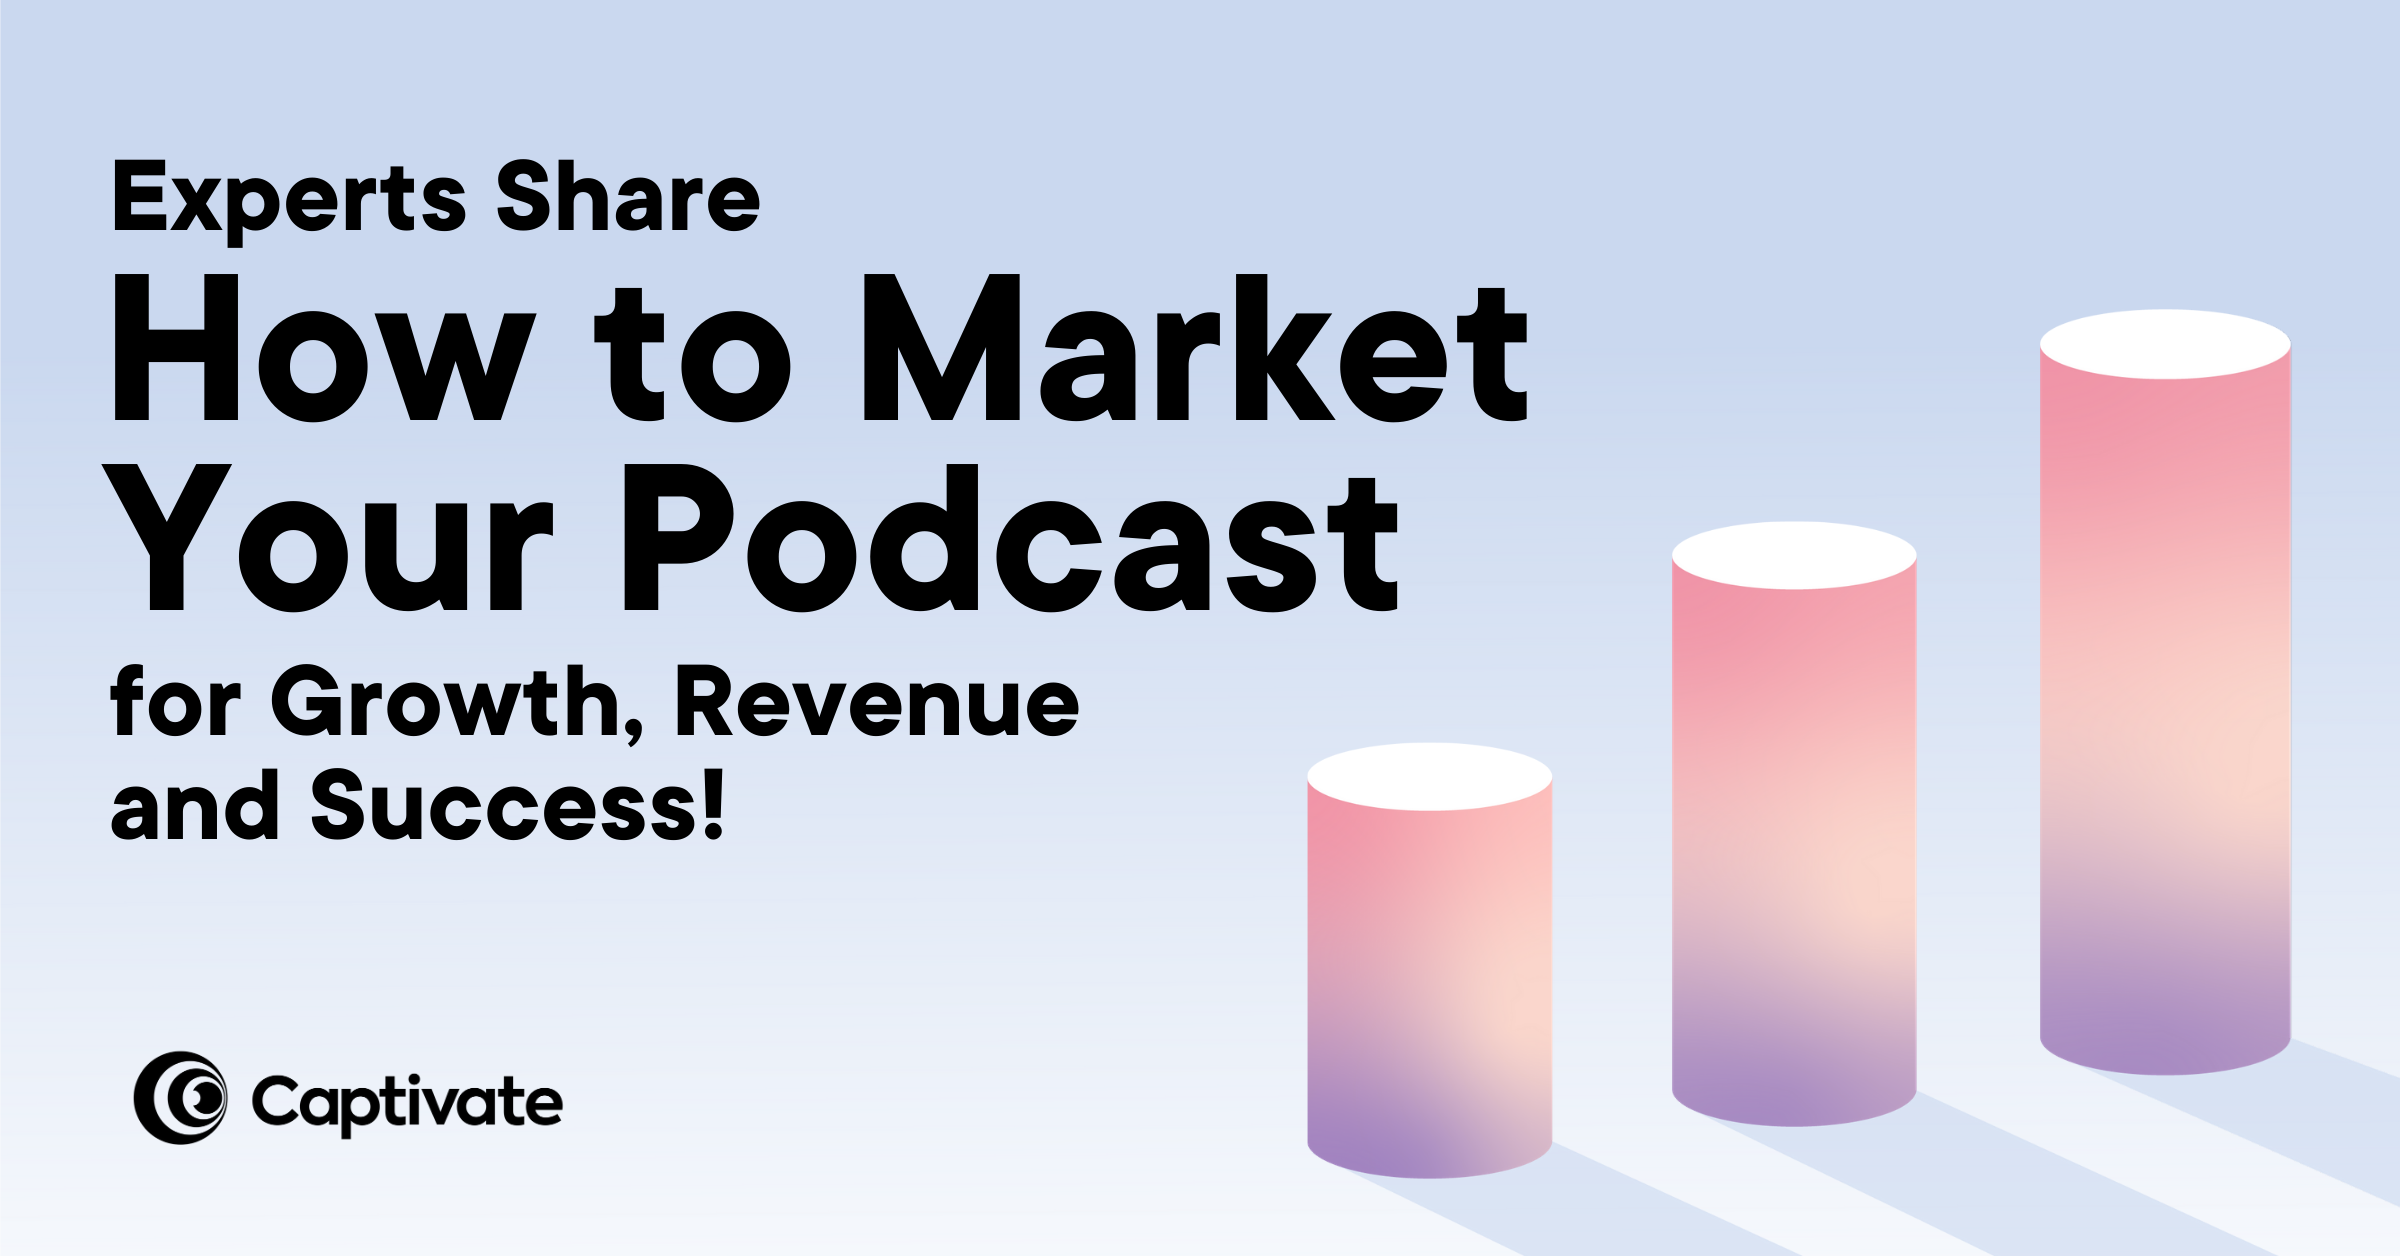 How to Market Your Podcast: 17 Easy Promotional Techniques! | Captivate